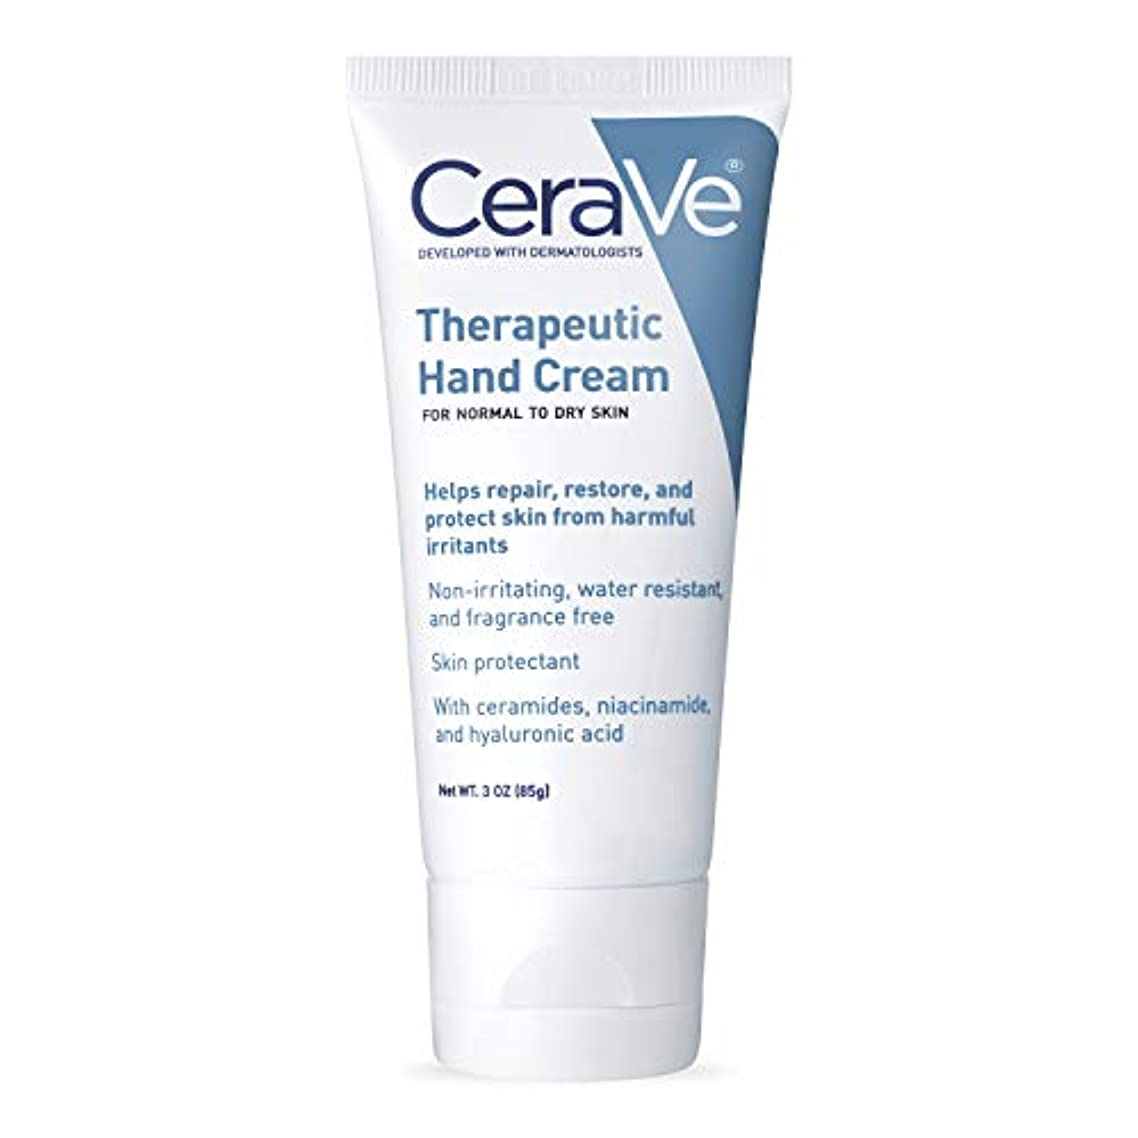 険しい動物園改修海外直送品Cerave CeraVe Therapeutic Hand Cream For Normal to Dry Skin, 3 oz